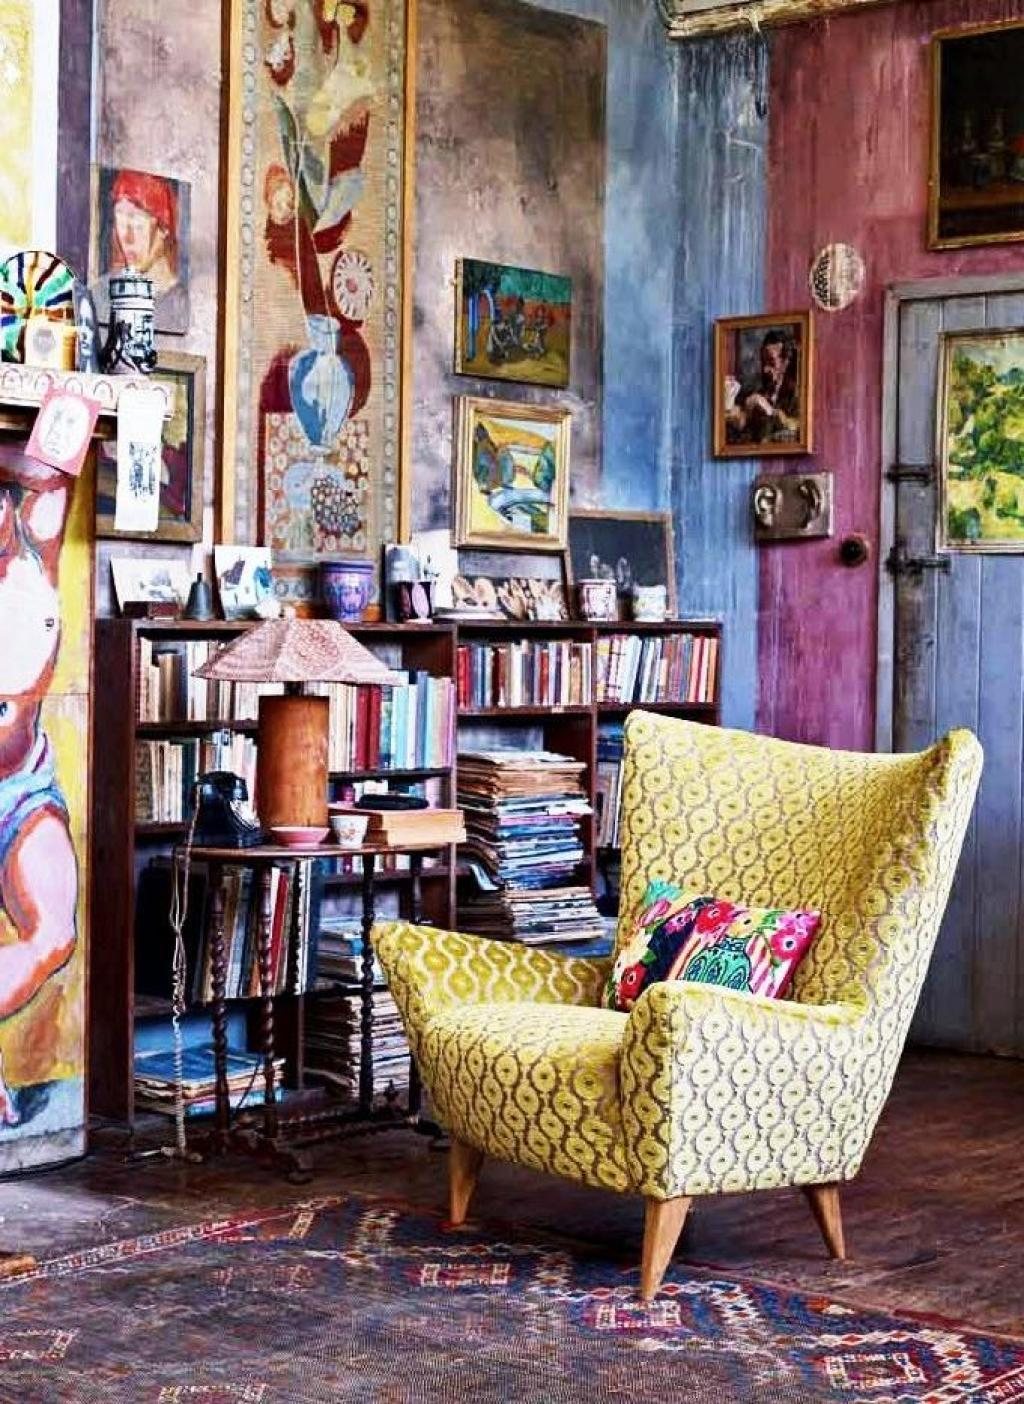 Emejing Bohemian Interior Design Ideas Pictures - Amazing House ...